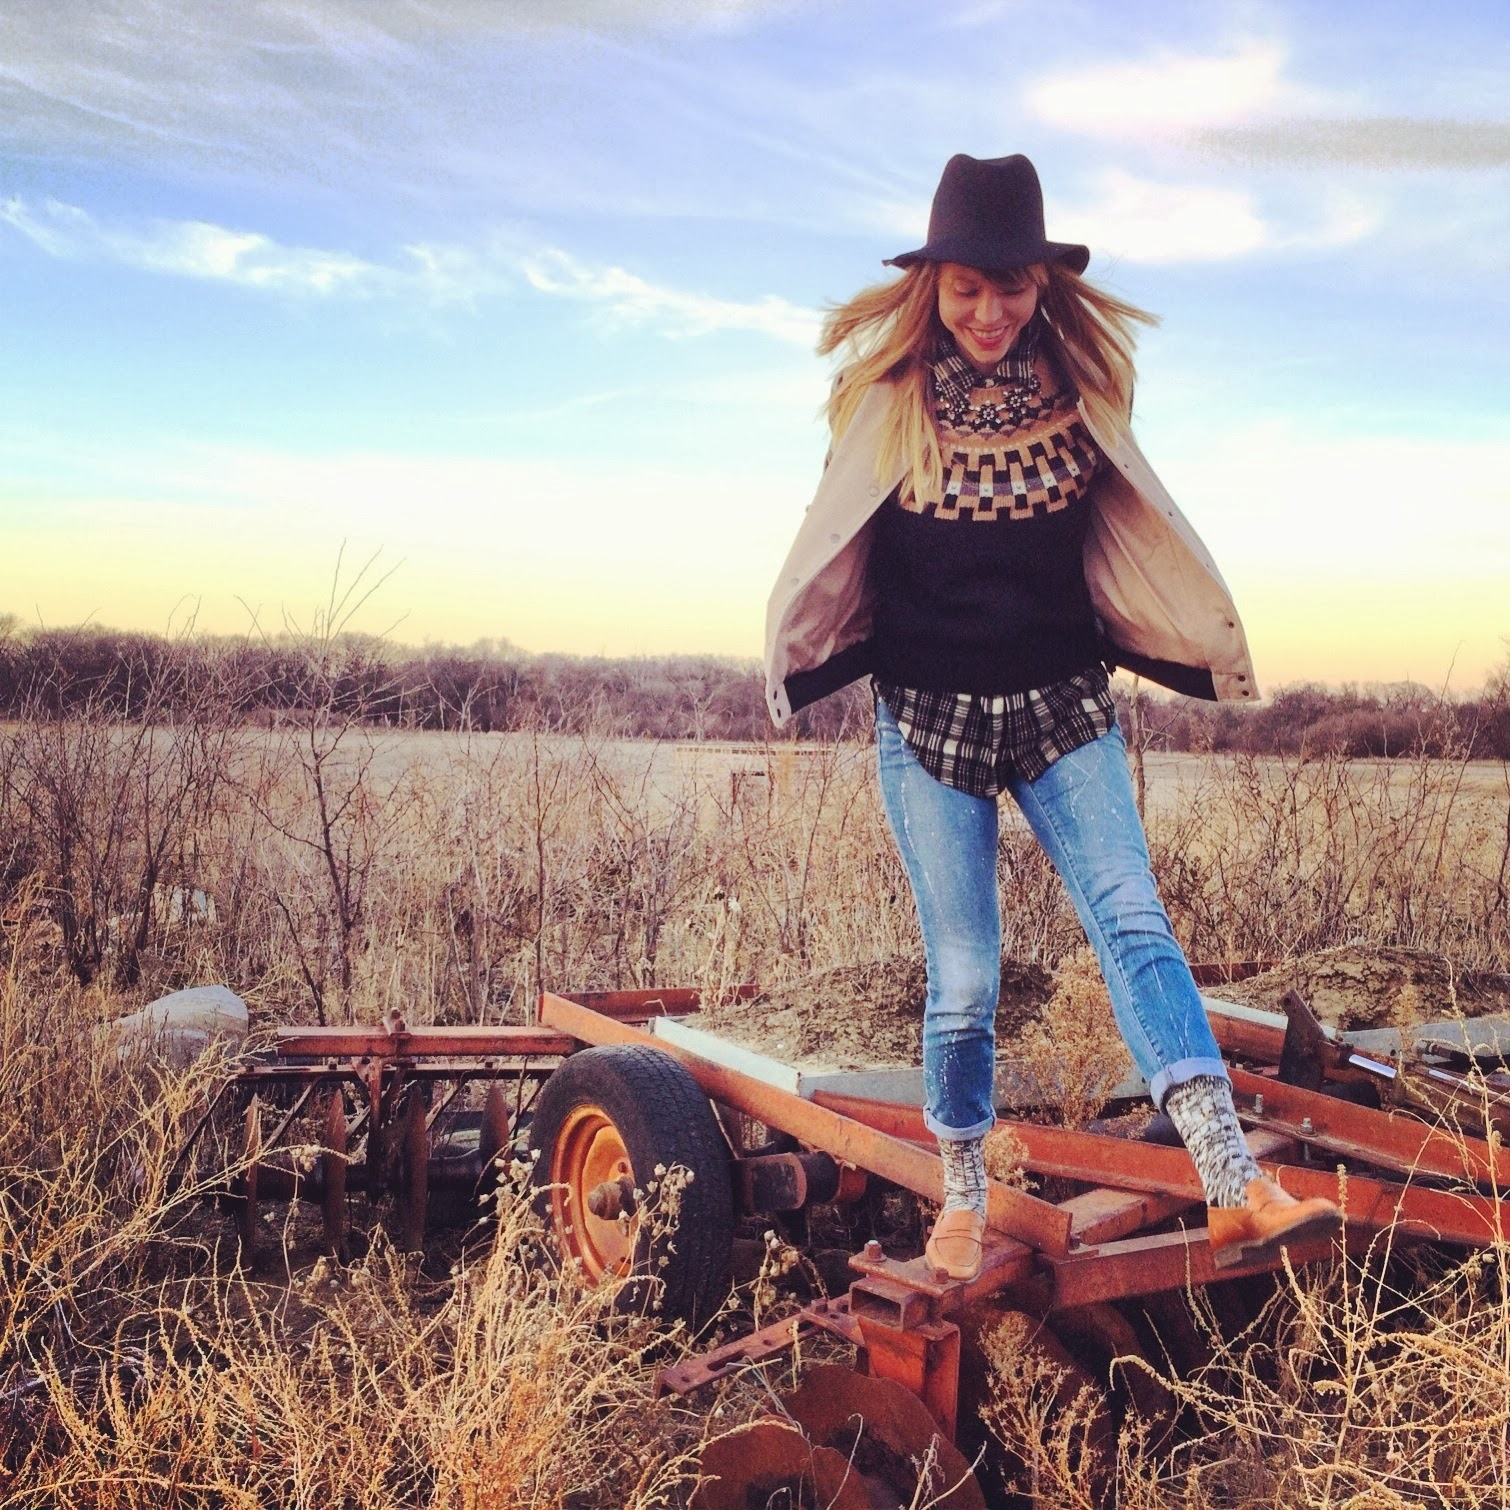 Nebraska, cornfield, Madewell, Topshop, Plaid, Denim, Fashion, Casual, Roots, Farm